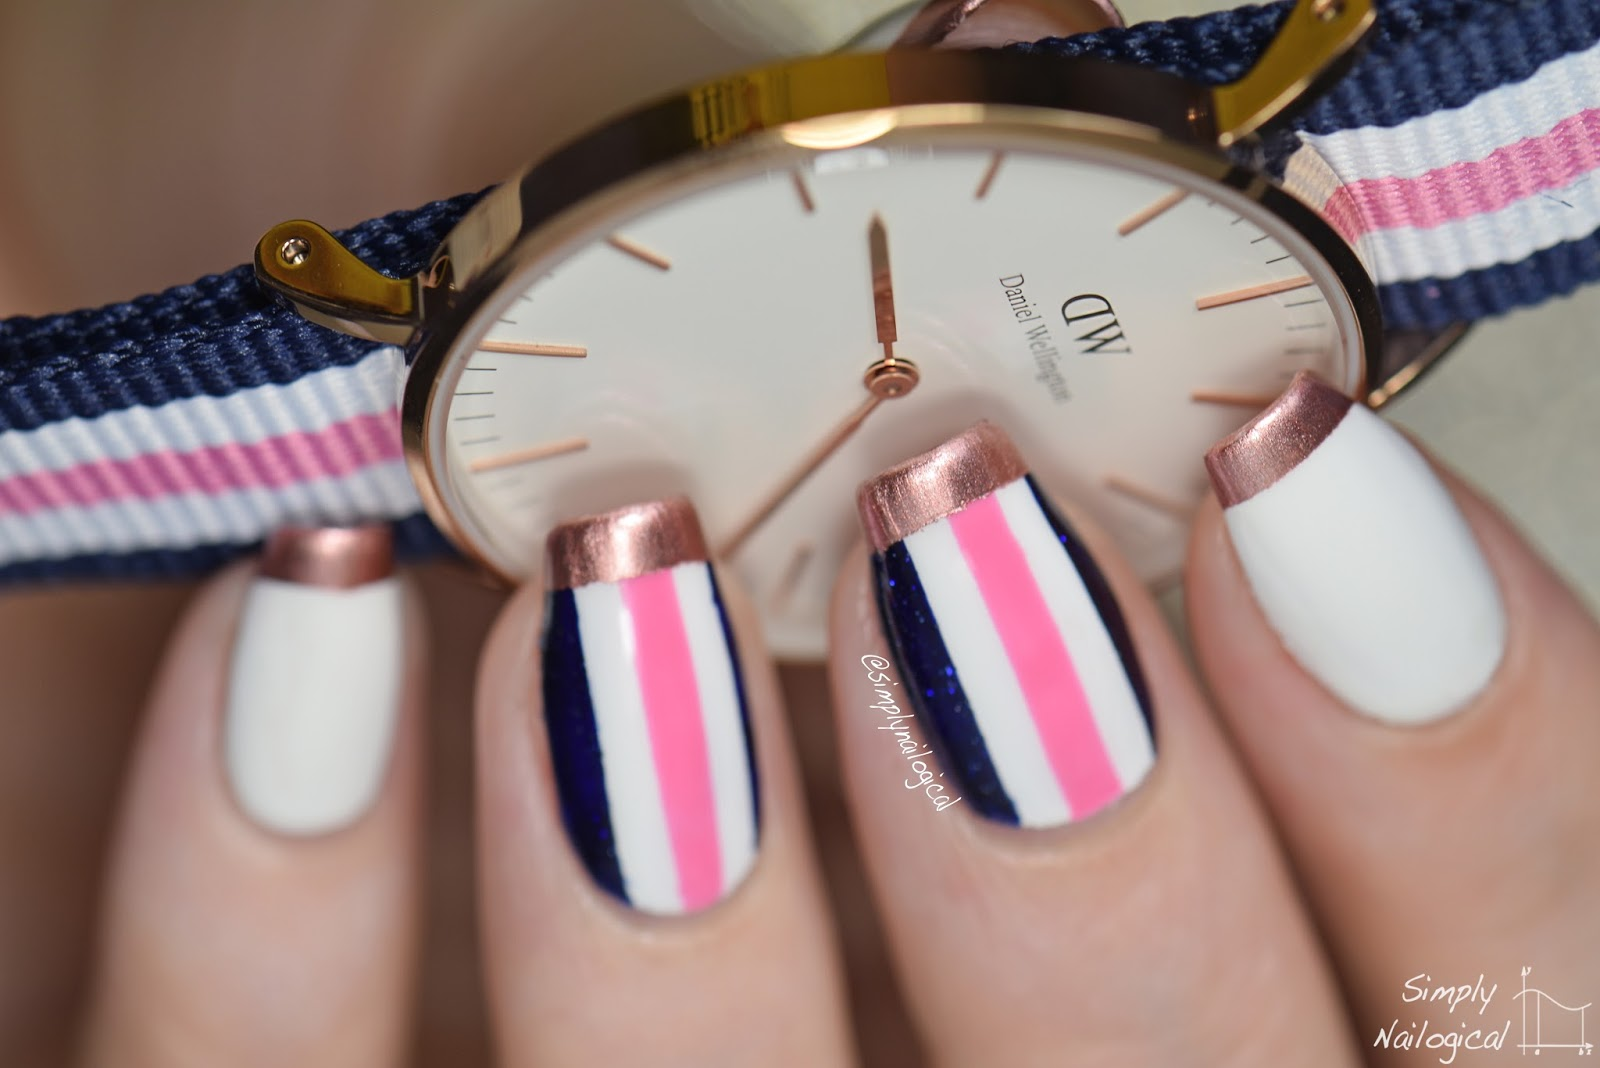 Simply Nailogical: Rose gold-tipped and stripes inspired by a ...